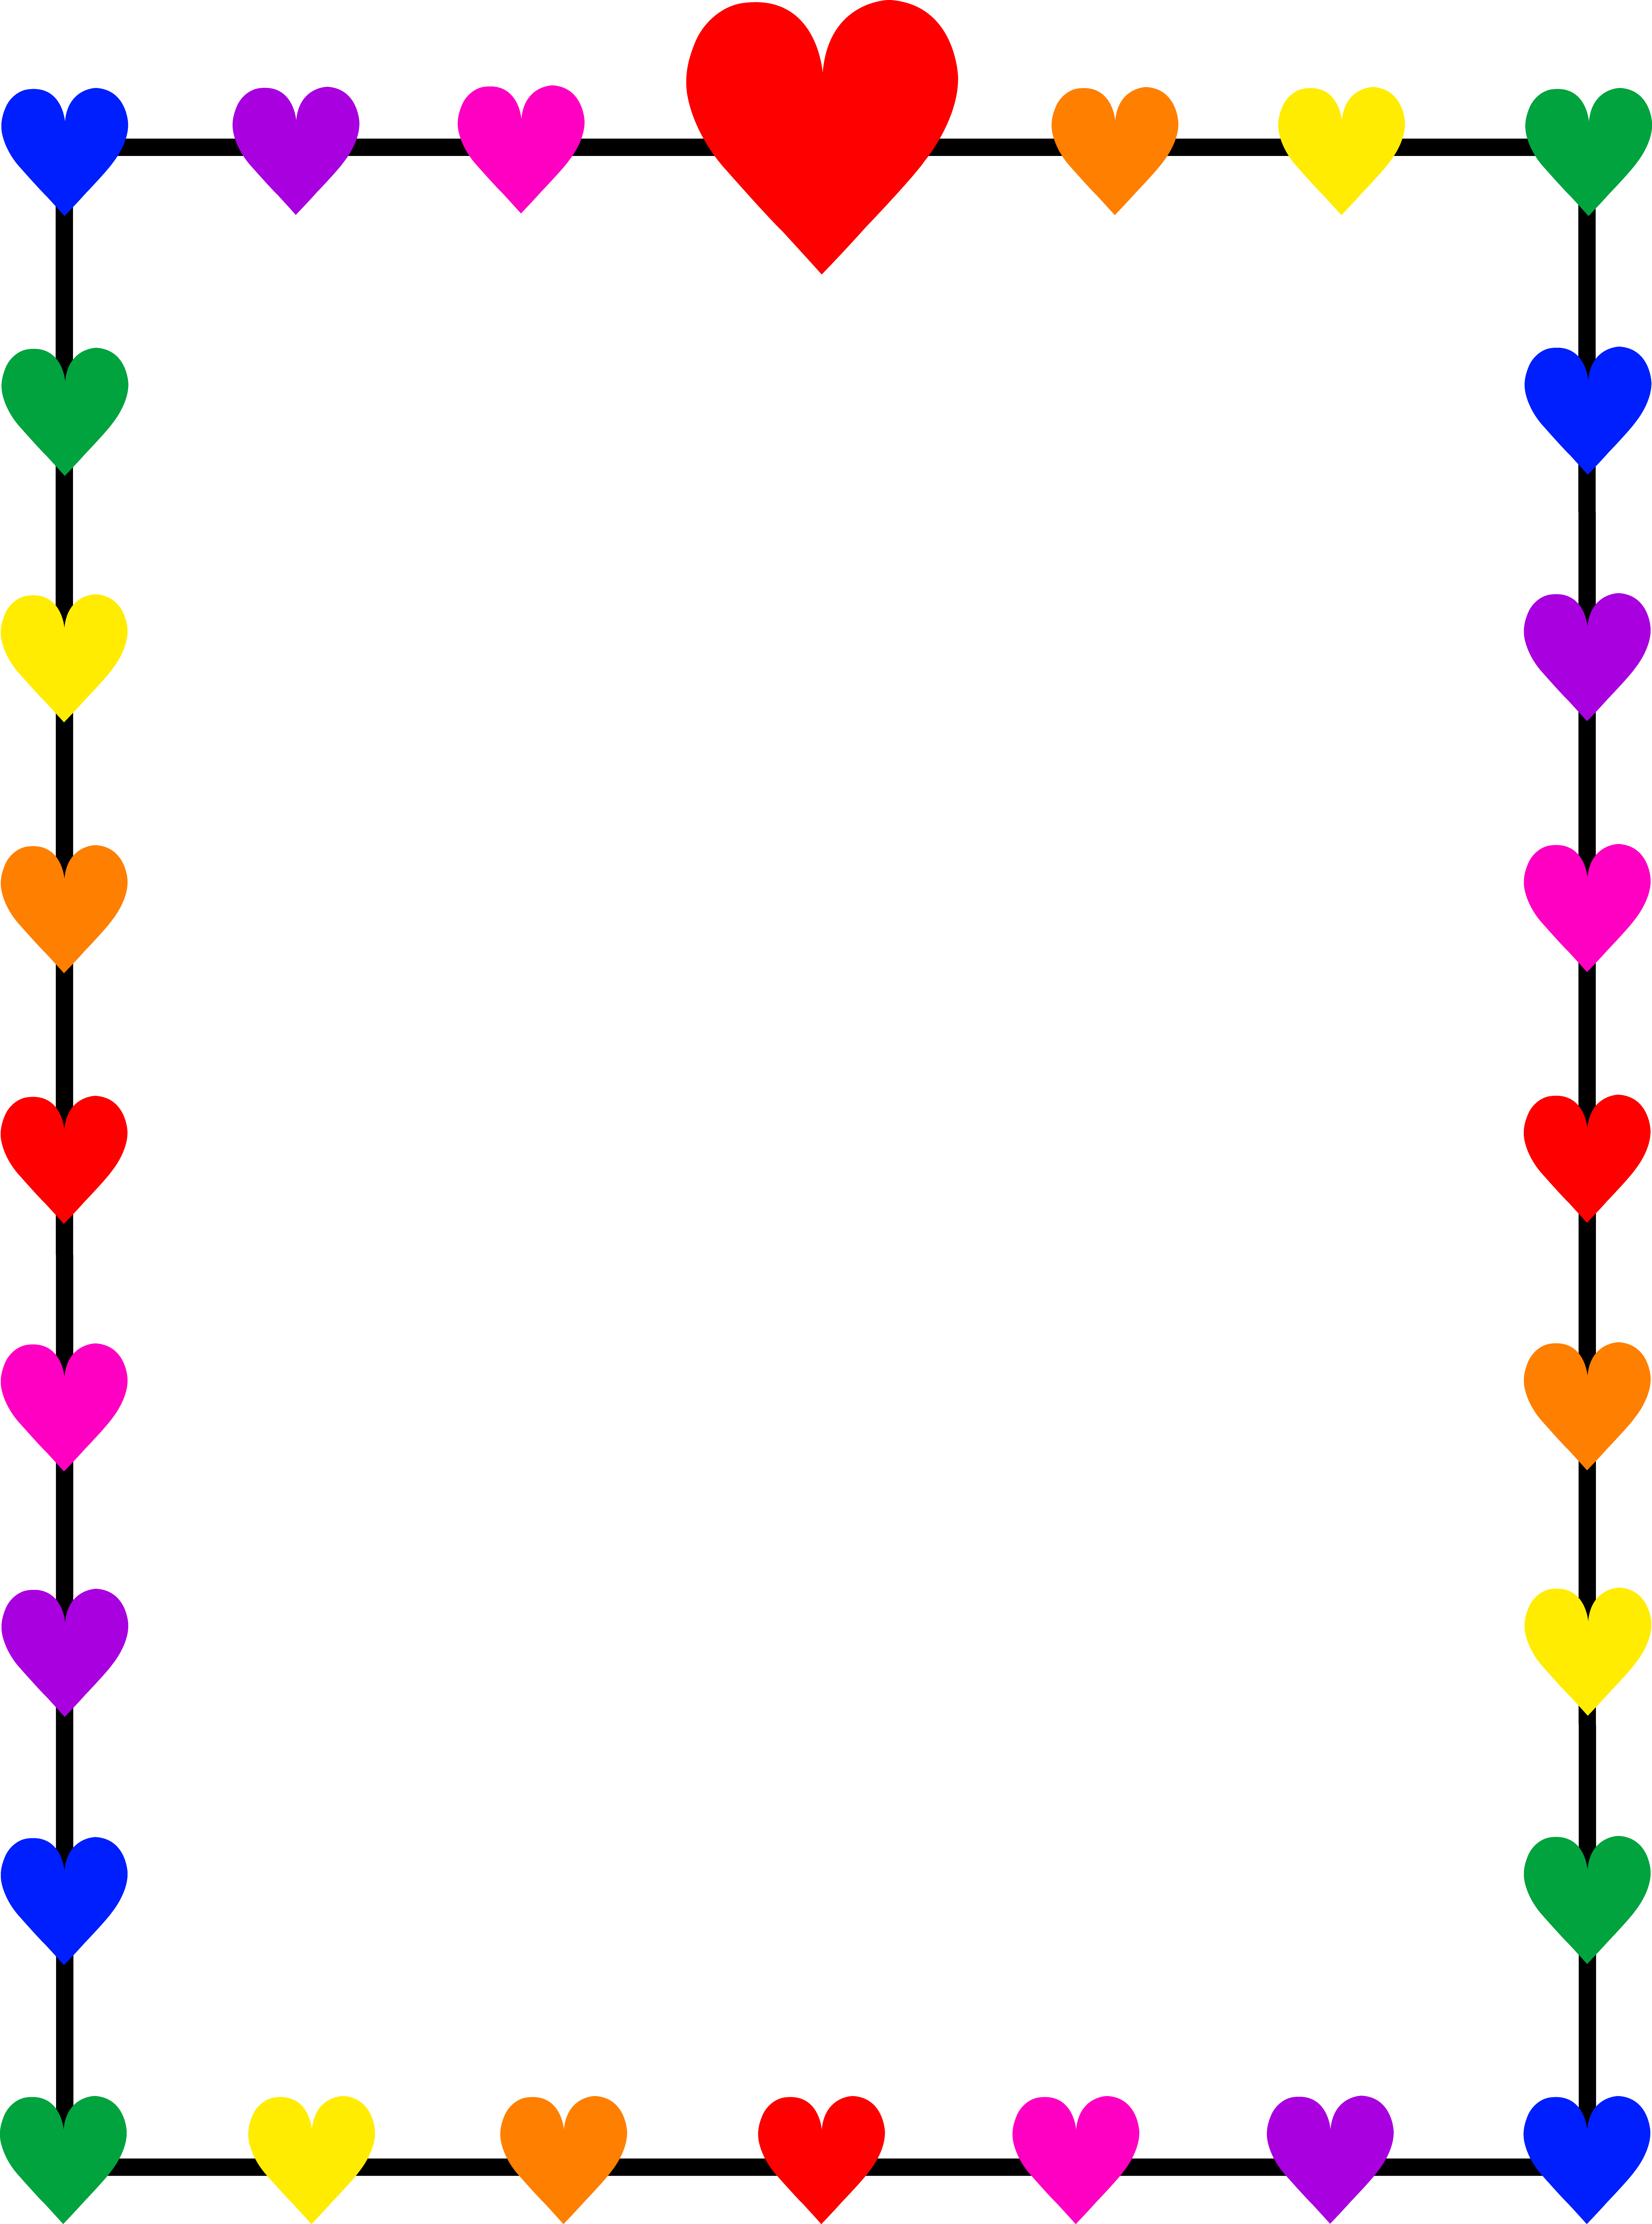 5952x8014 Borders And Frames Clip Art Rainbow Hearts Border Frame